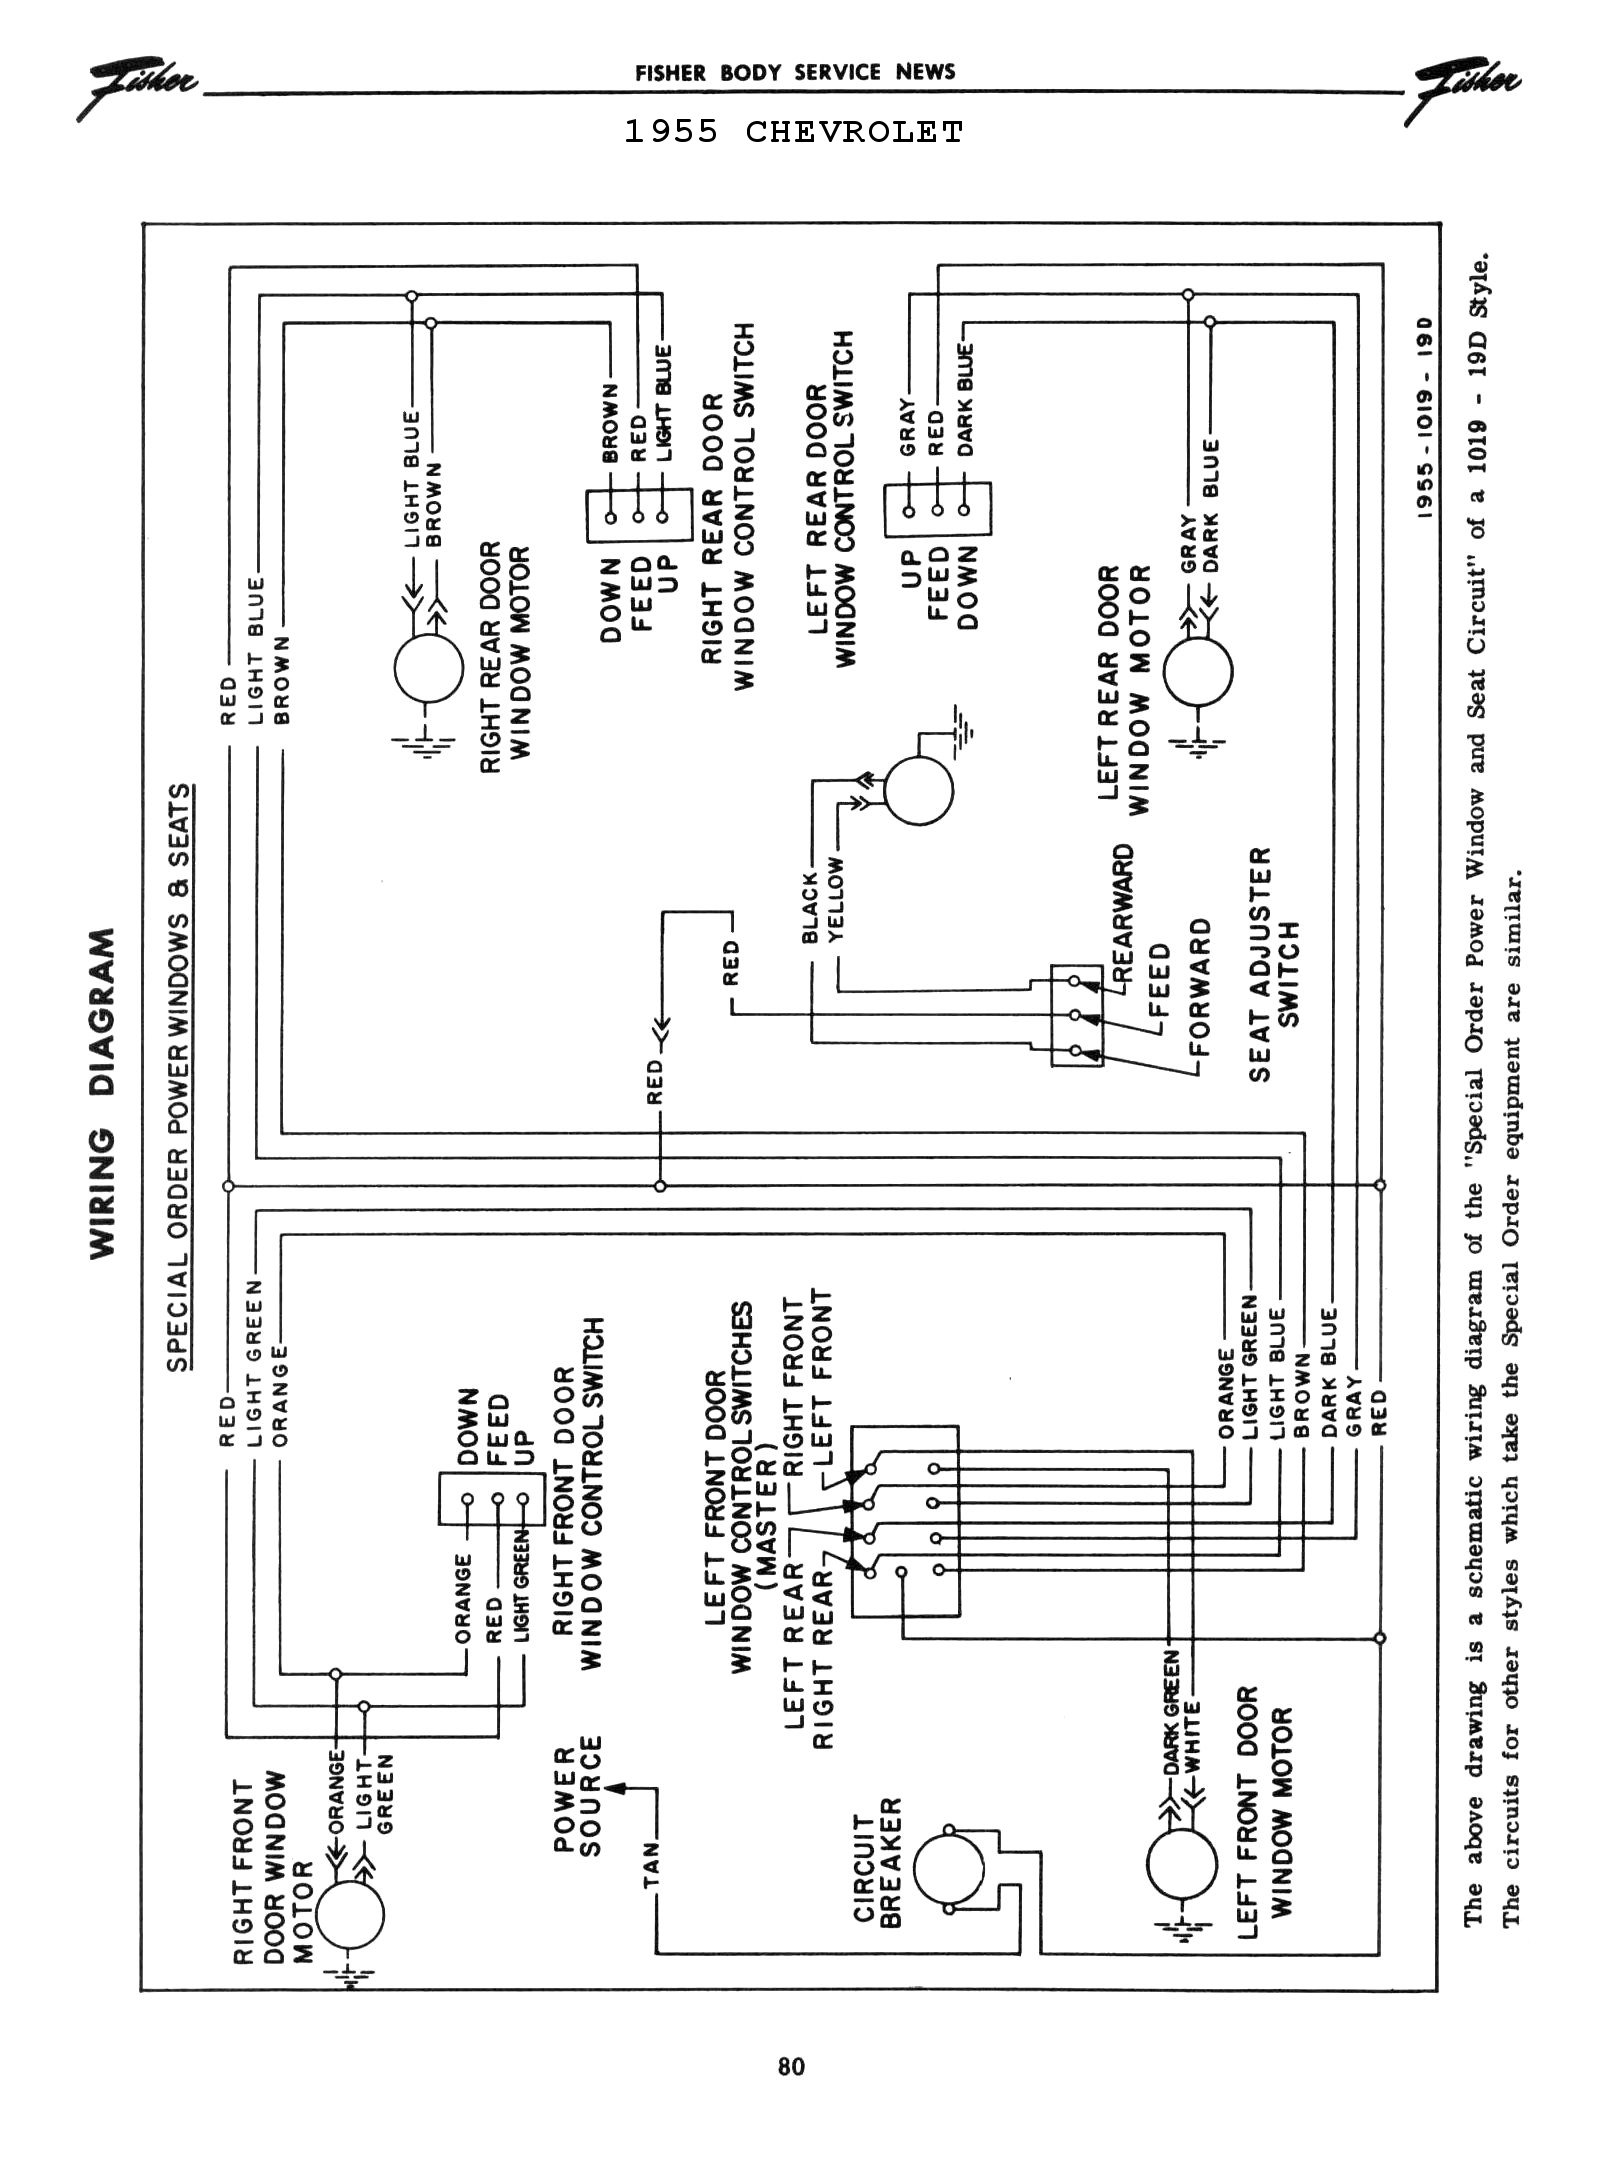 Wiring Diagram Horse Trailer : Excess horse trailer wiring diagram carry on